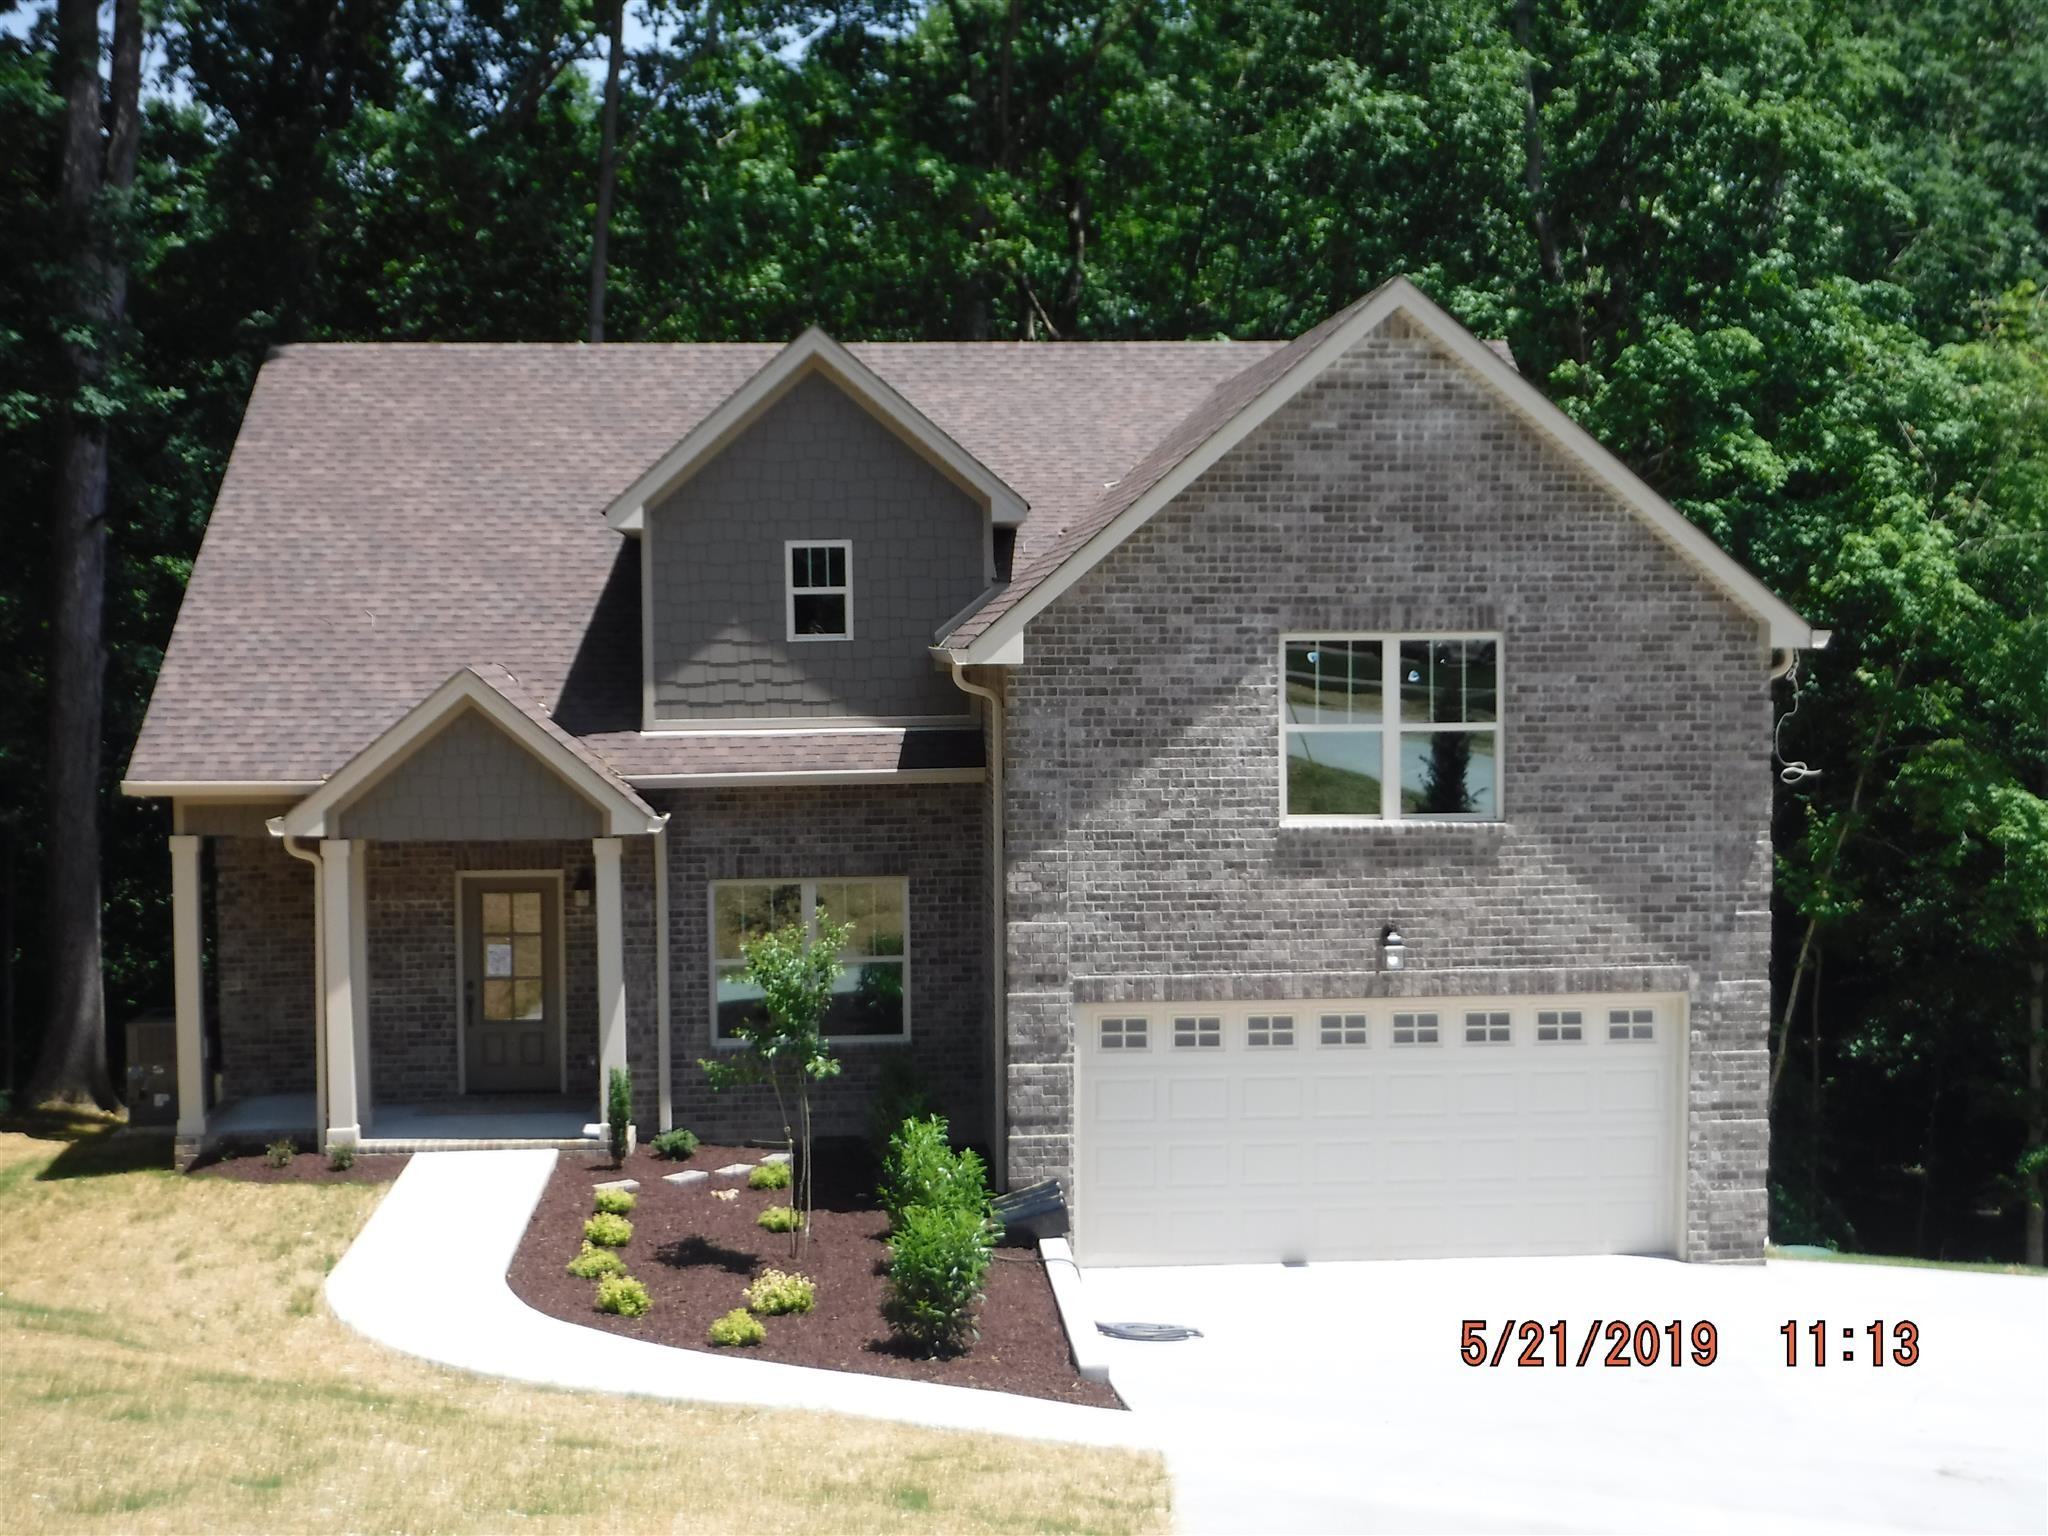 3046 Gracie Ann Dr, Greenbrier, TN 37073 - Greenbrier, TN real estate listing